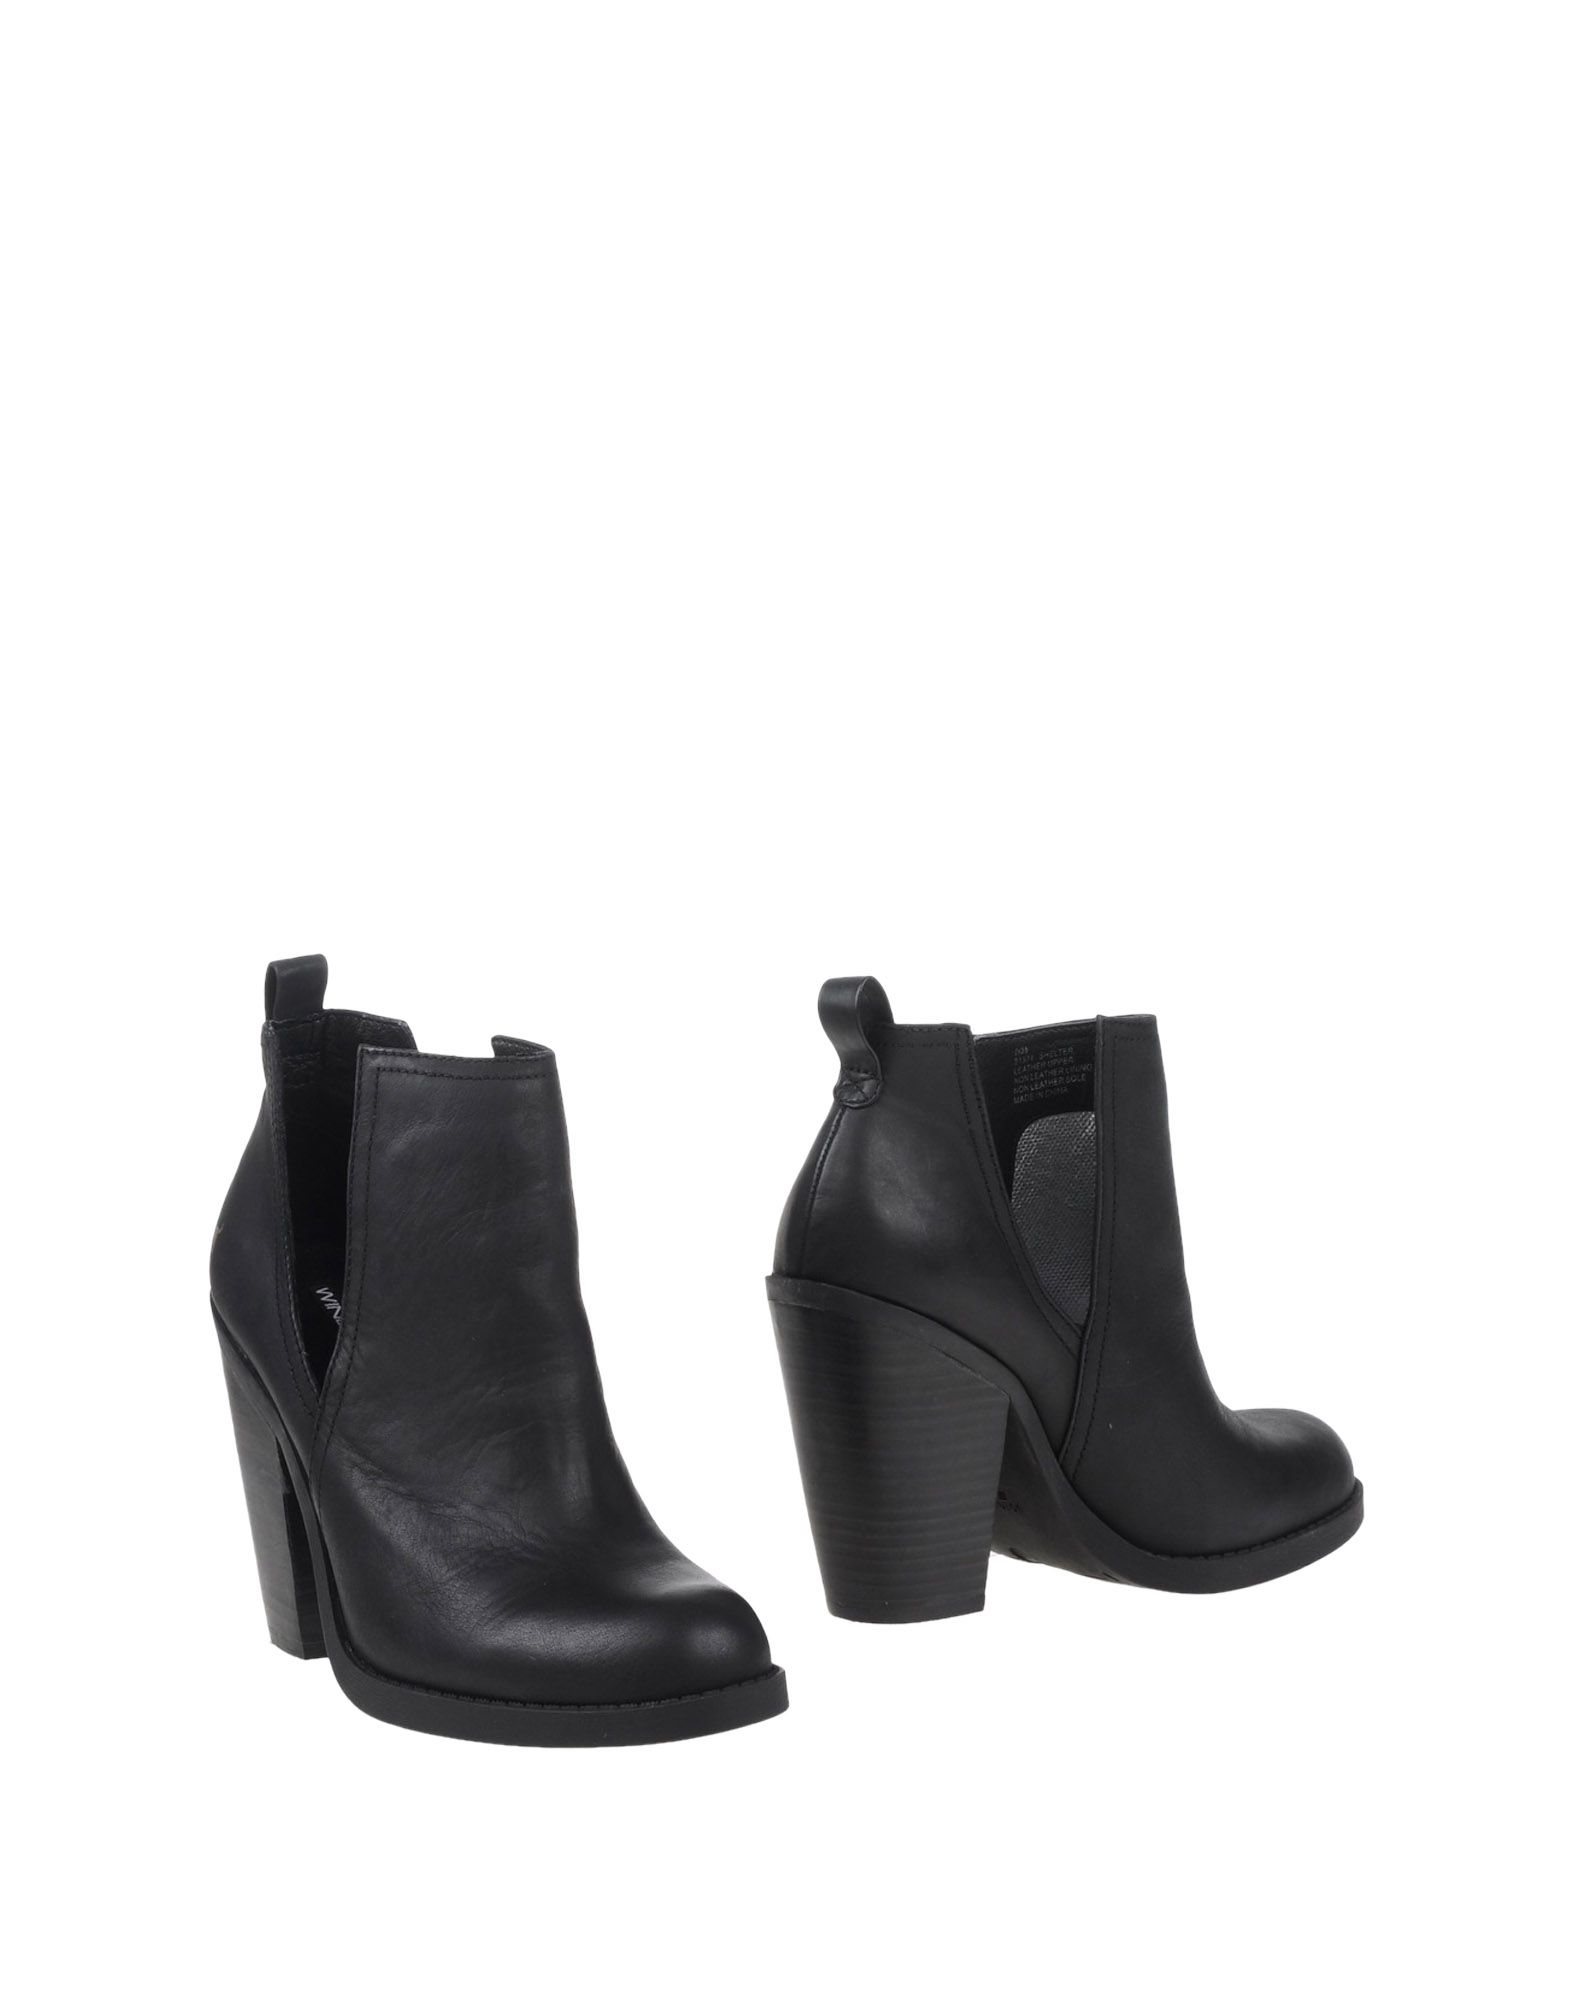 windsor smith female windsor smith ankle boots